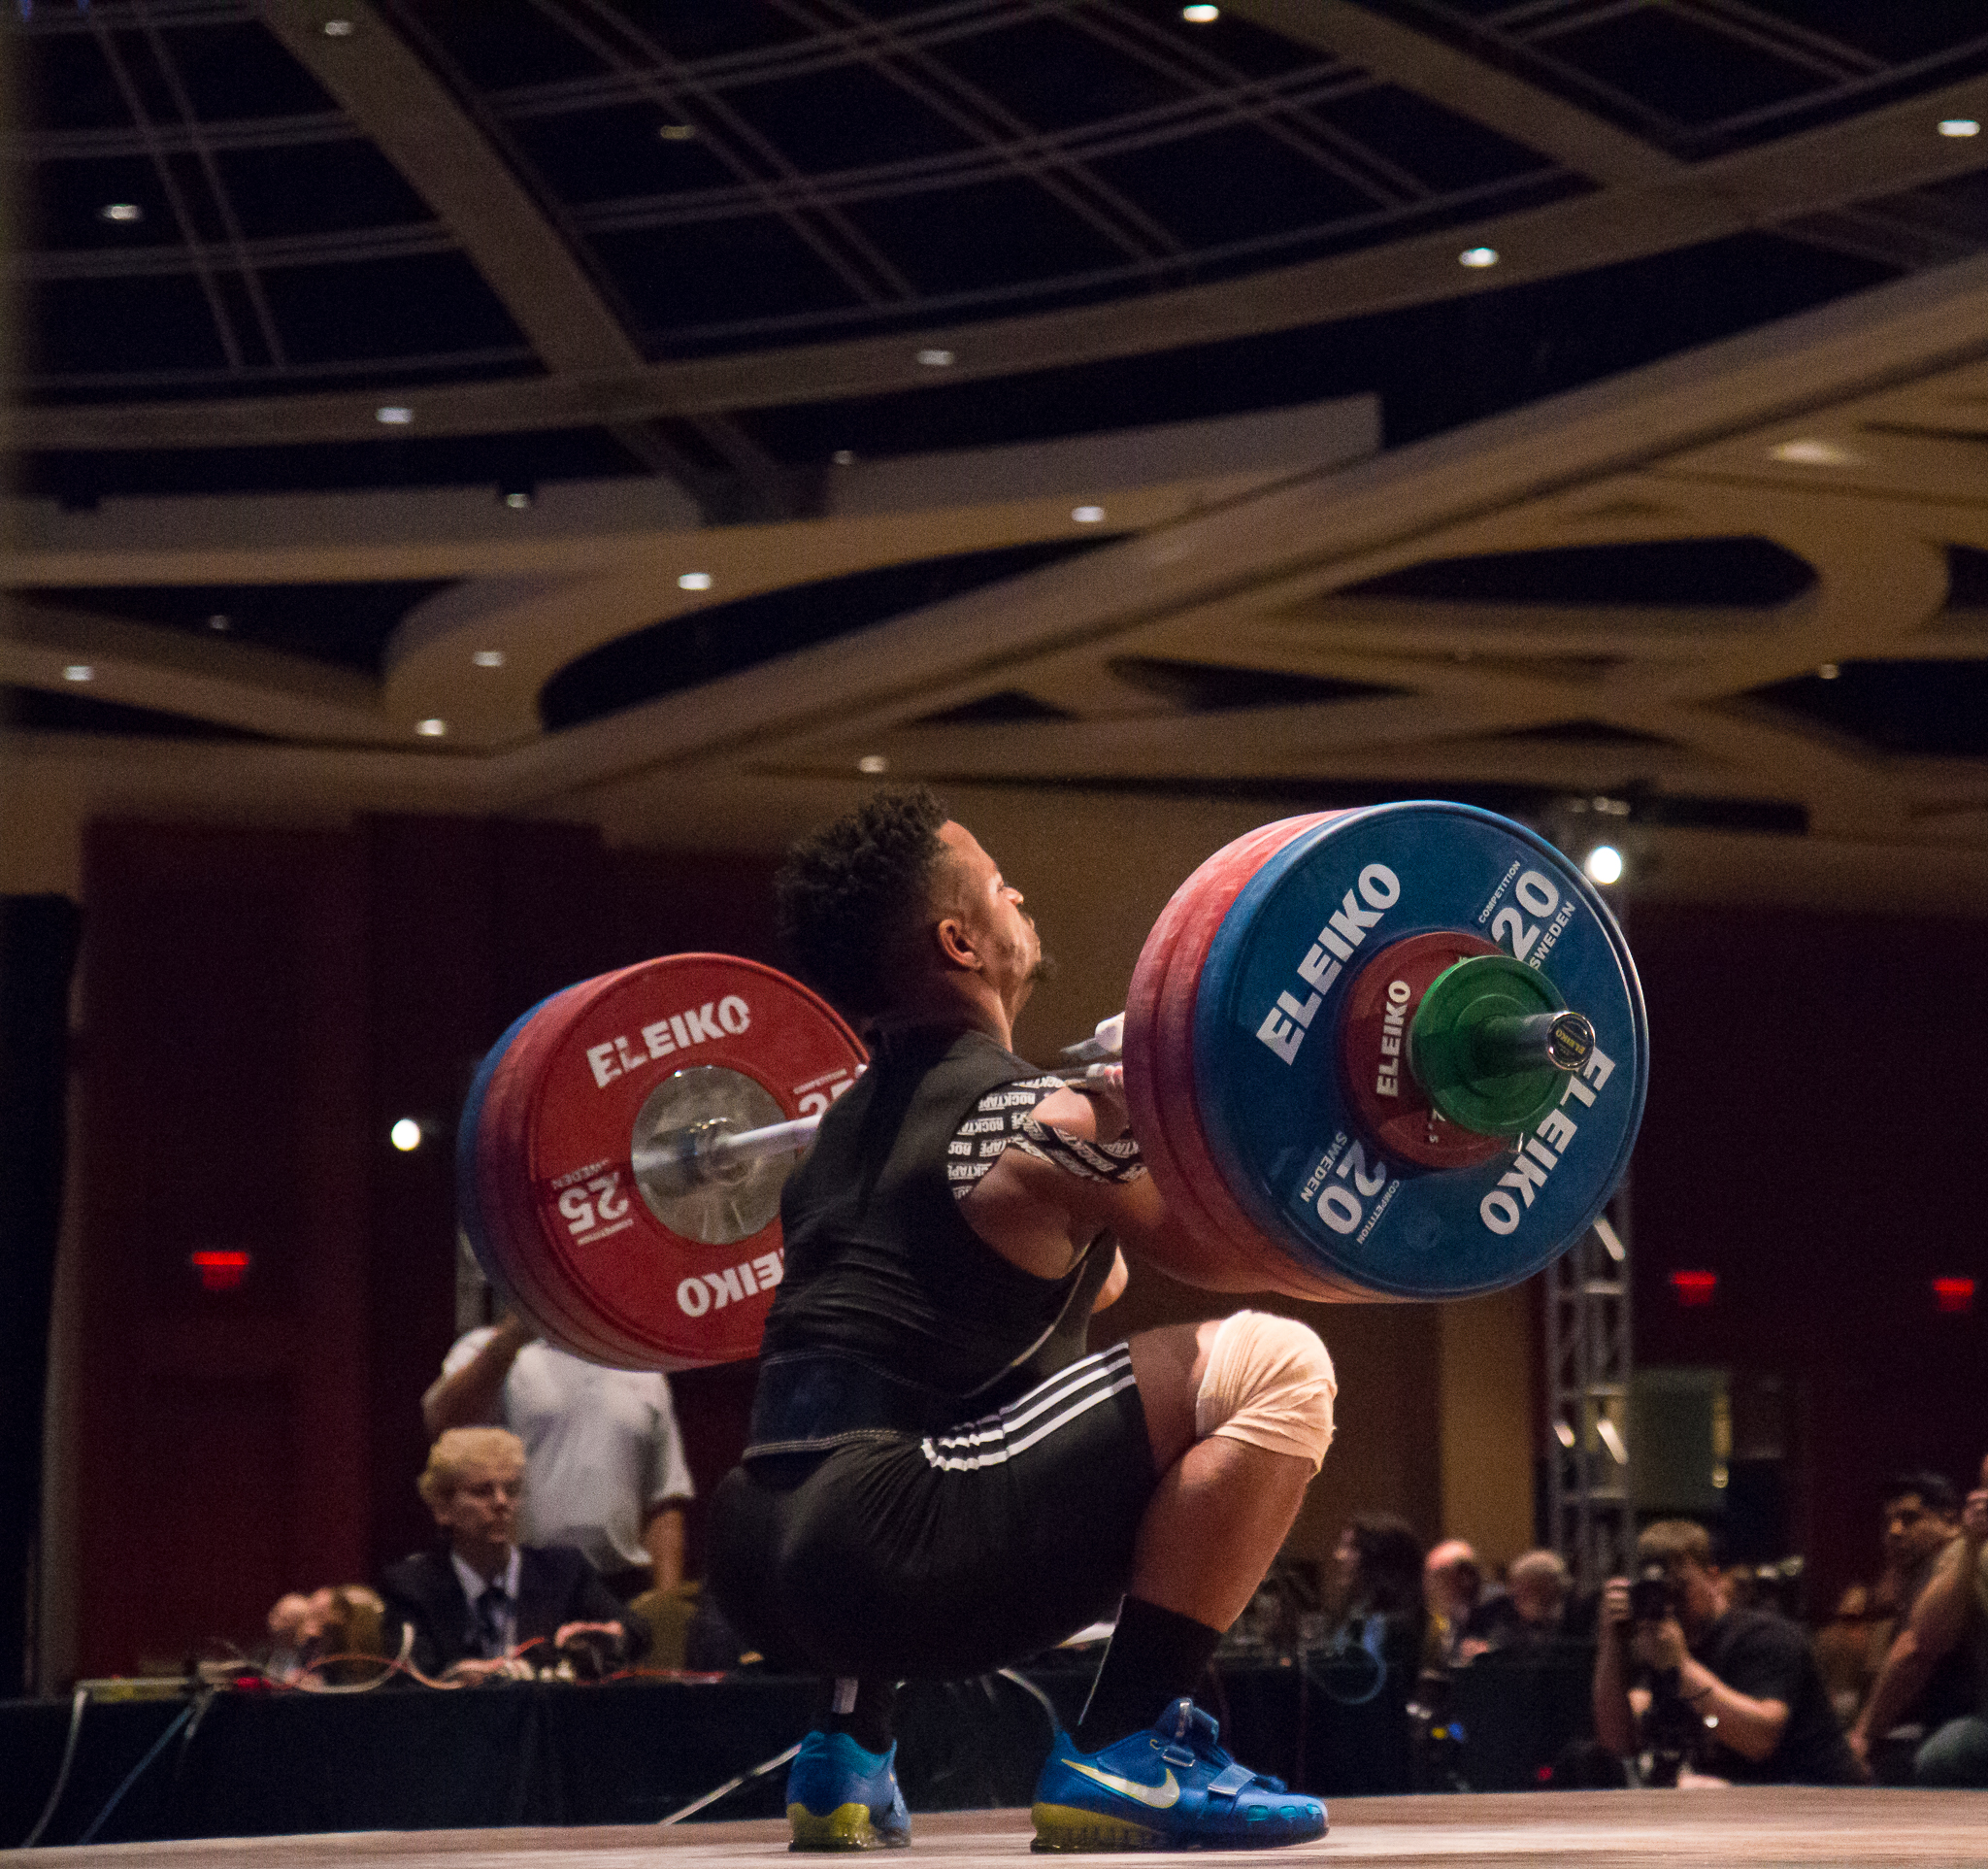 session-a-favorites-american-open-2016-weightlifting-photography (26 of 38).jpg